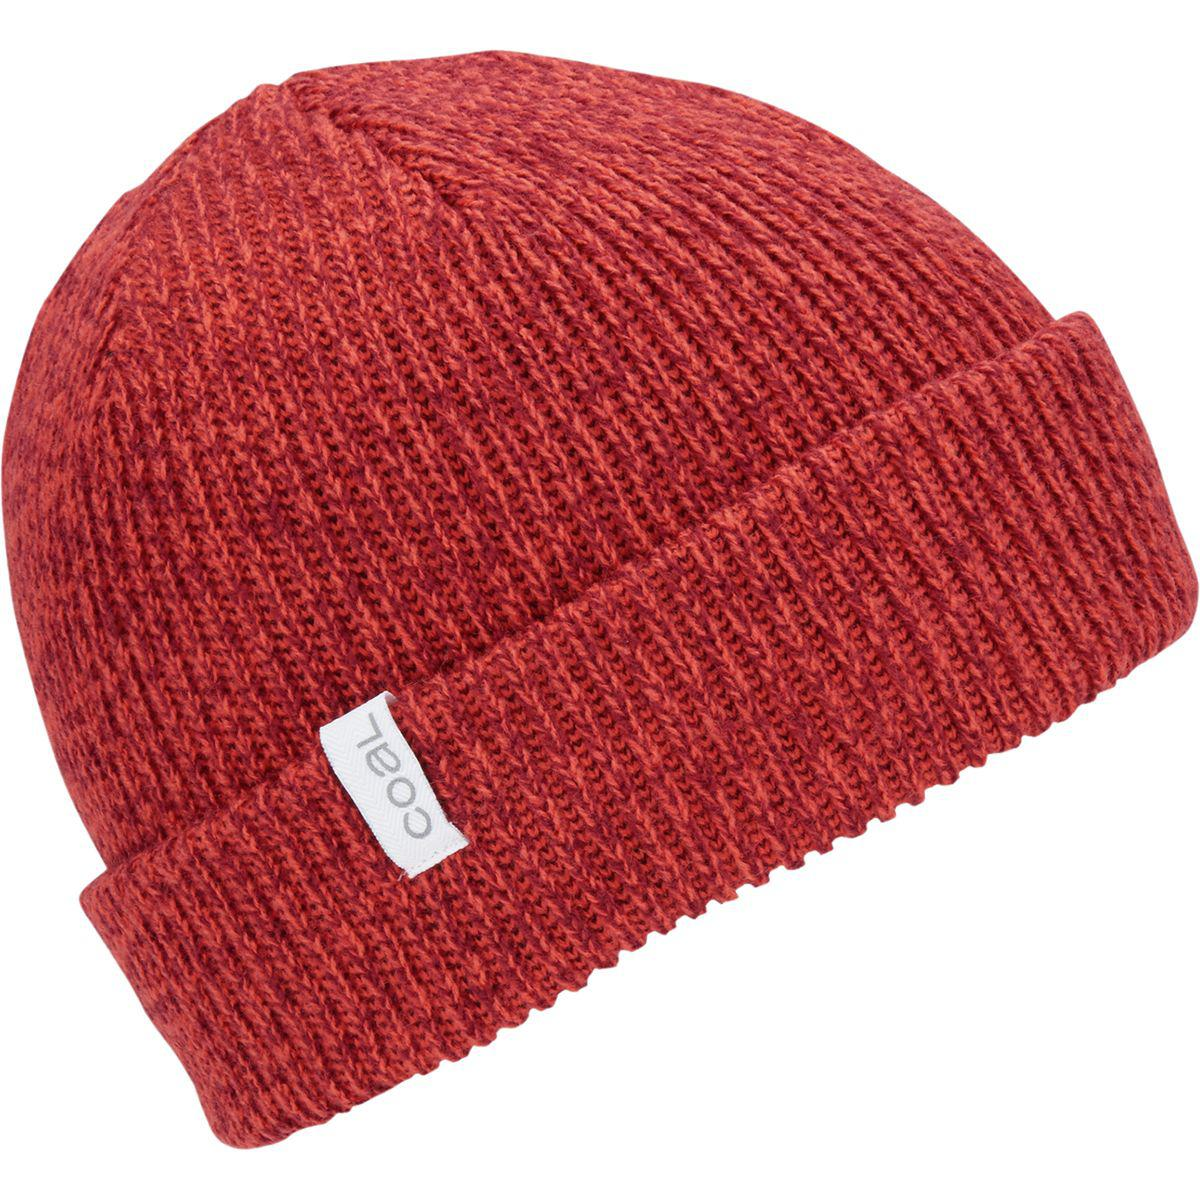 107e24b141ad9 Lyst - Coal Frena Solid Beanie in Red for Men